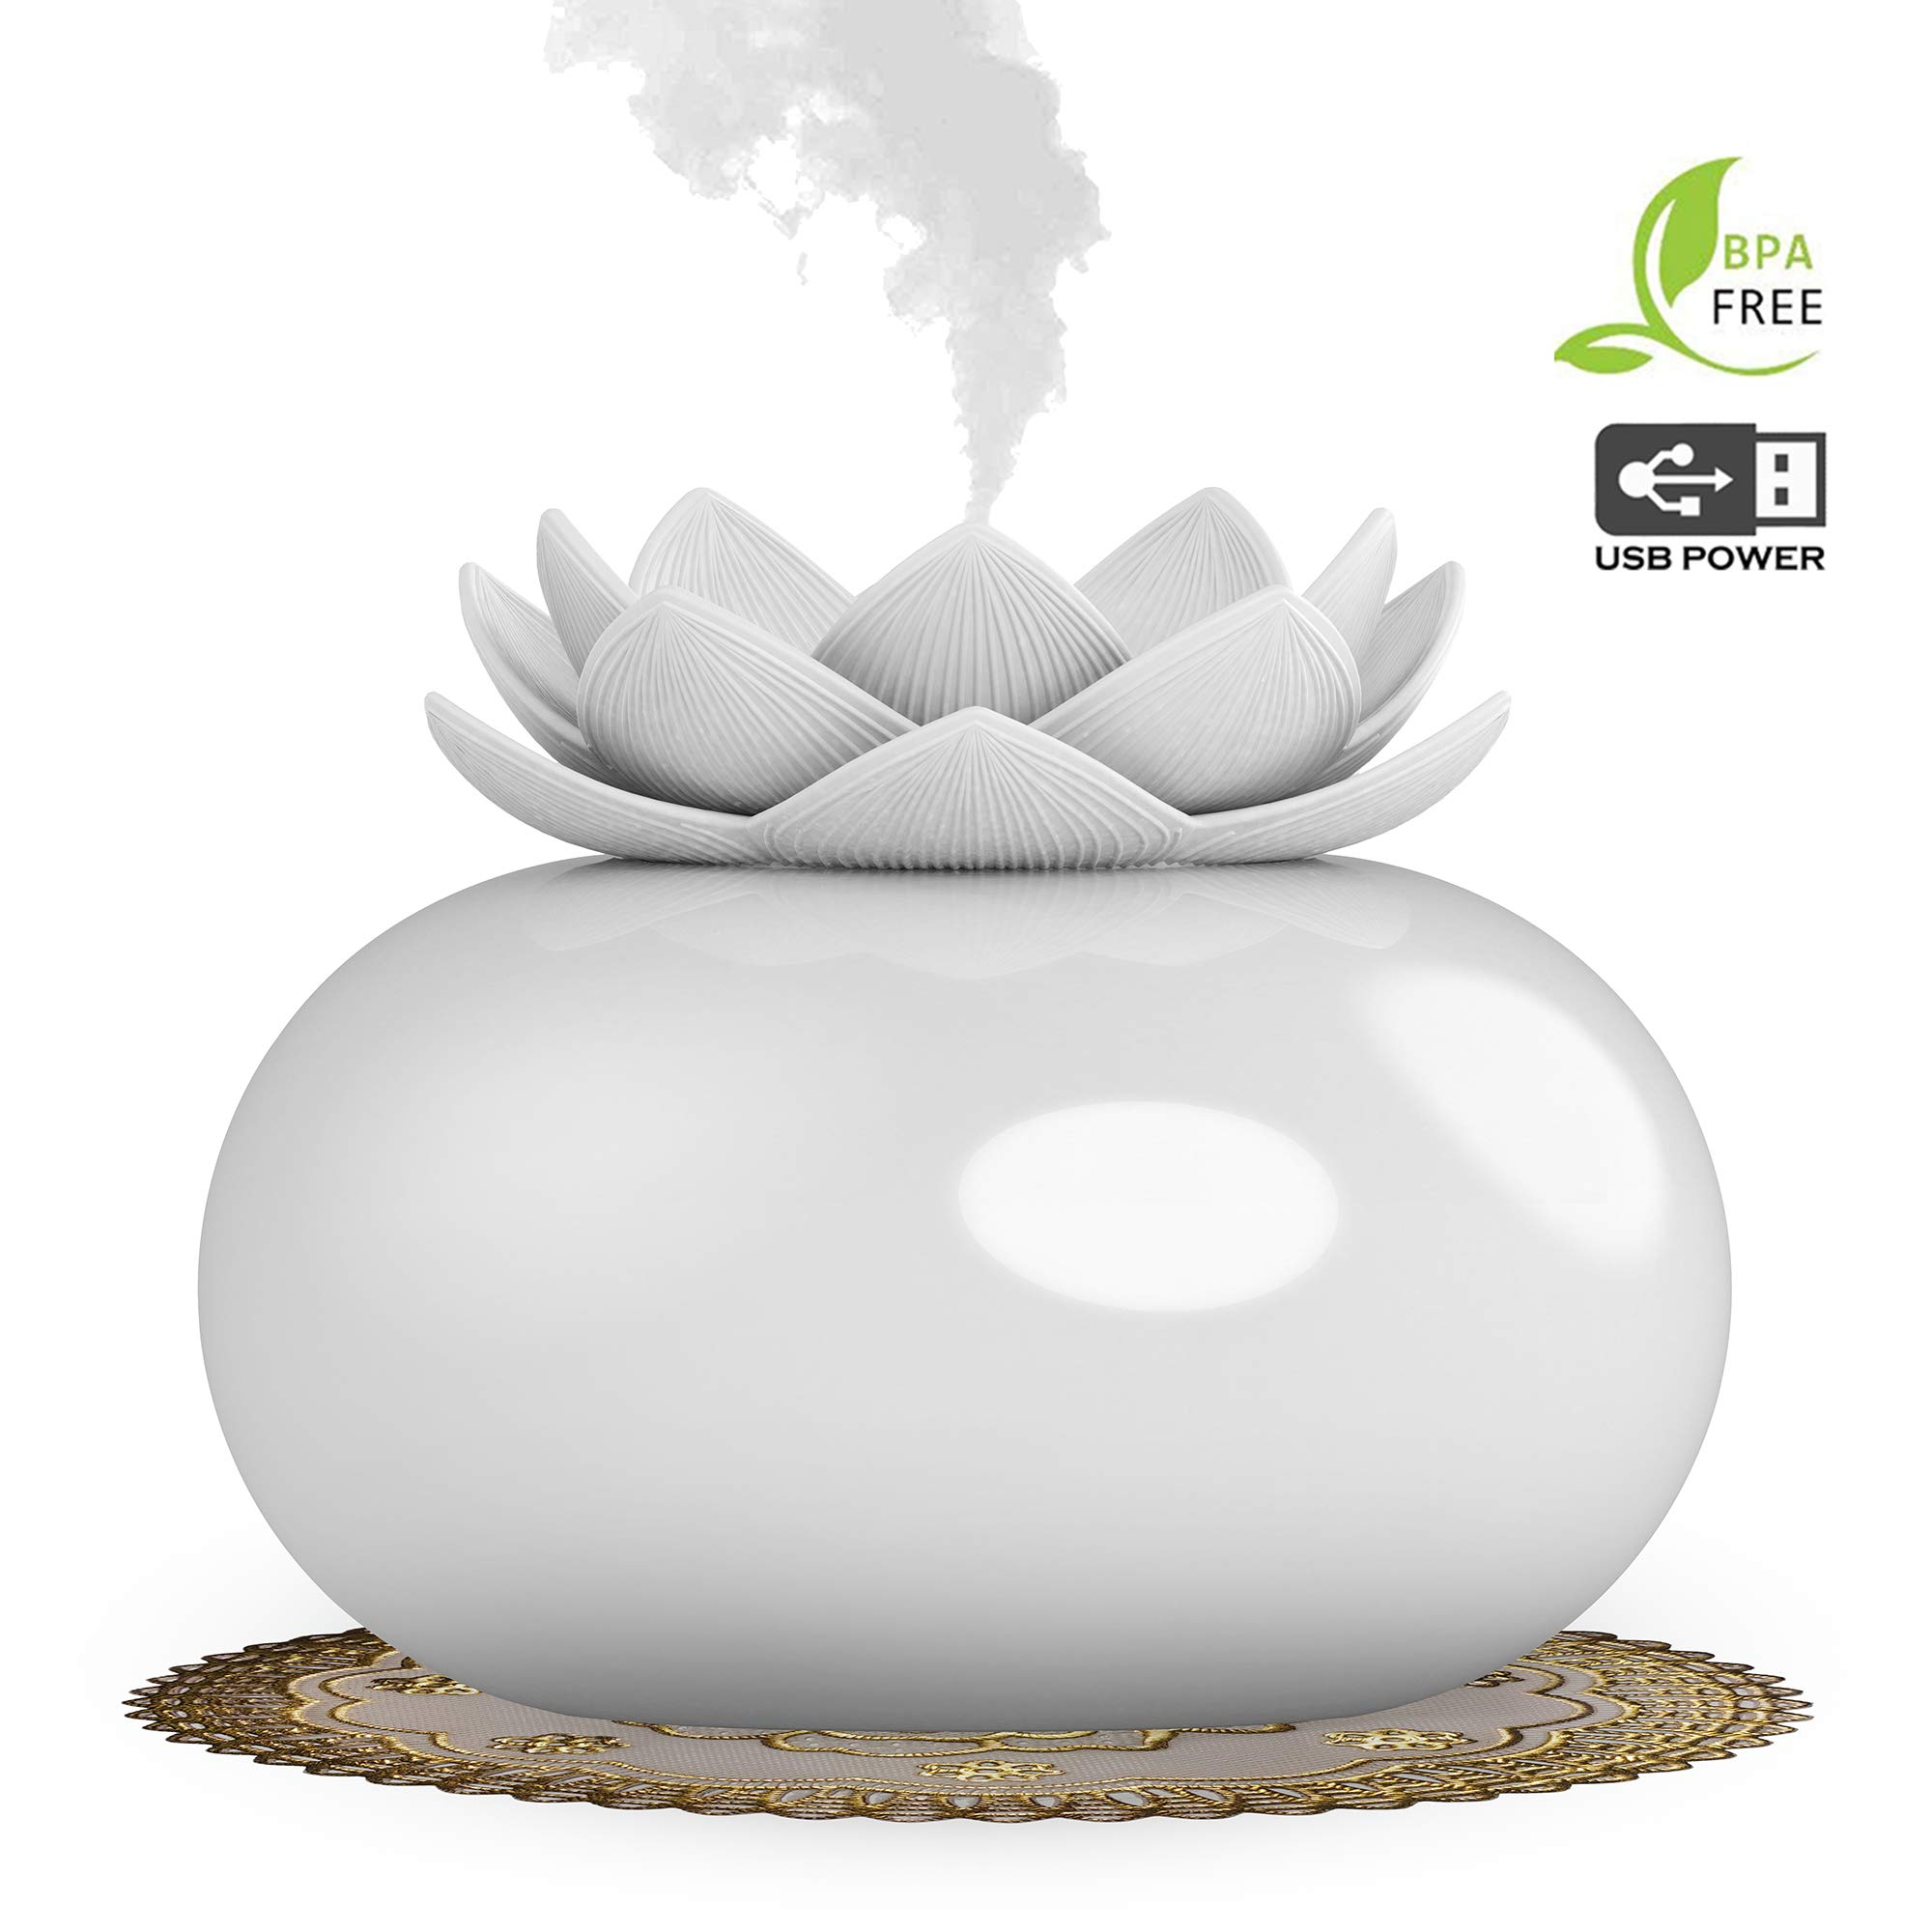 YJY Flower Essential Oil Diffuser Decorative Aromatherapy Diffuser,Cute Lotus Ceramic Humidifier Crafts Ornaments,USB Timer 12 Hours Portable for Home Bedroom Office Yoga SPA(White)